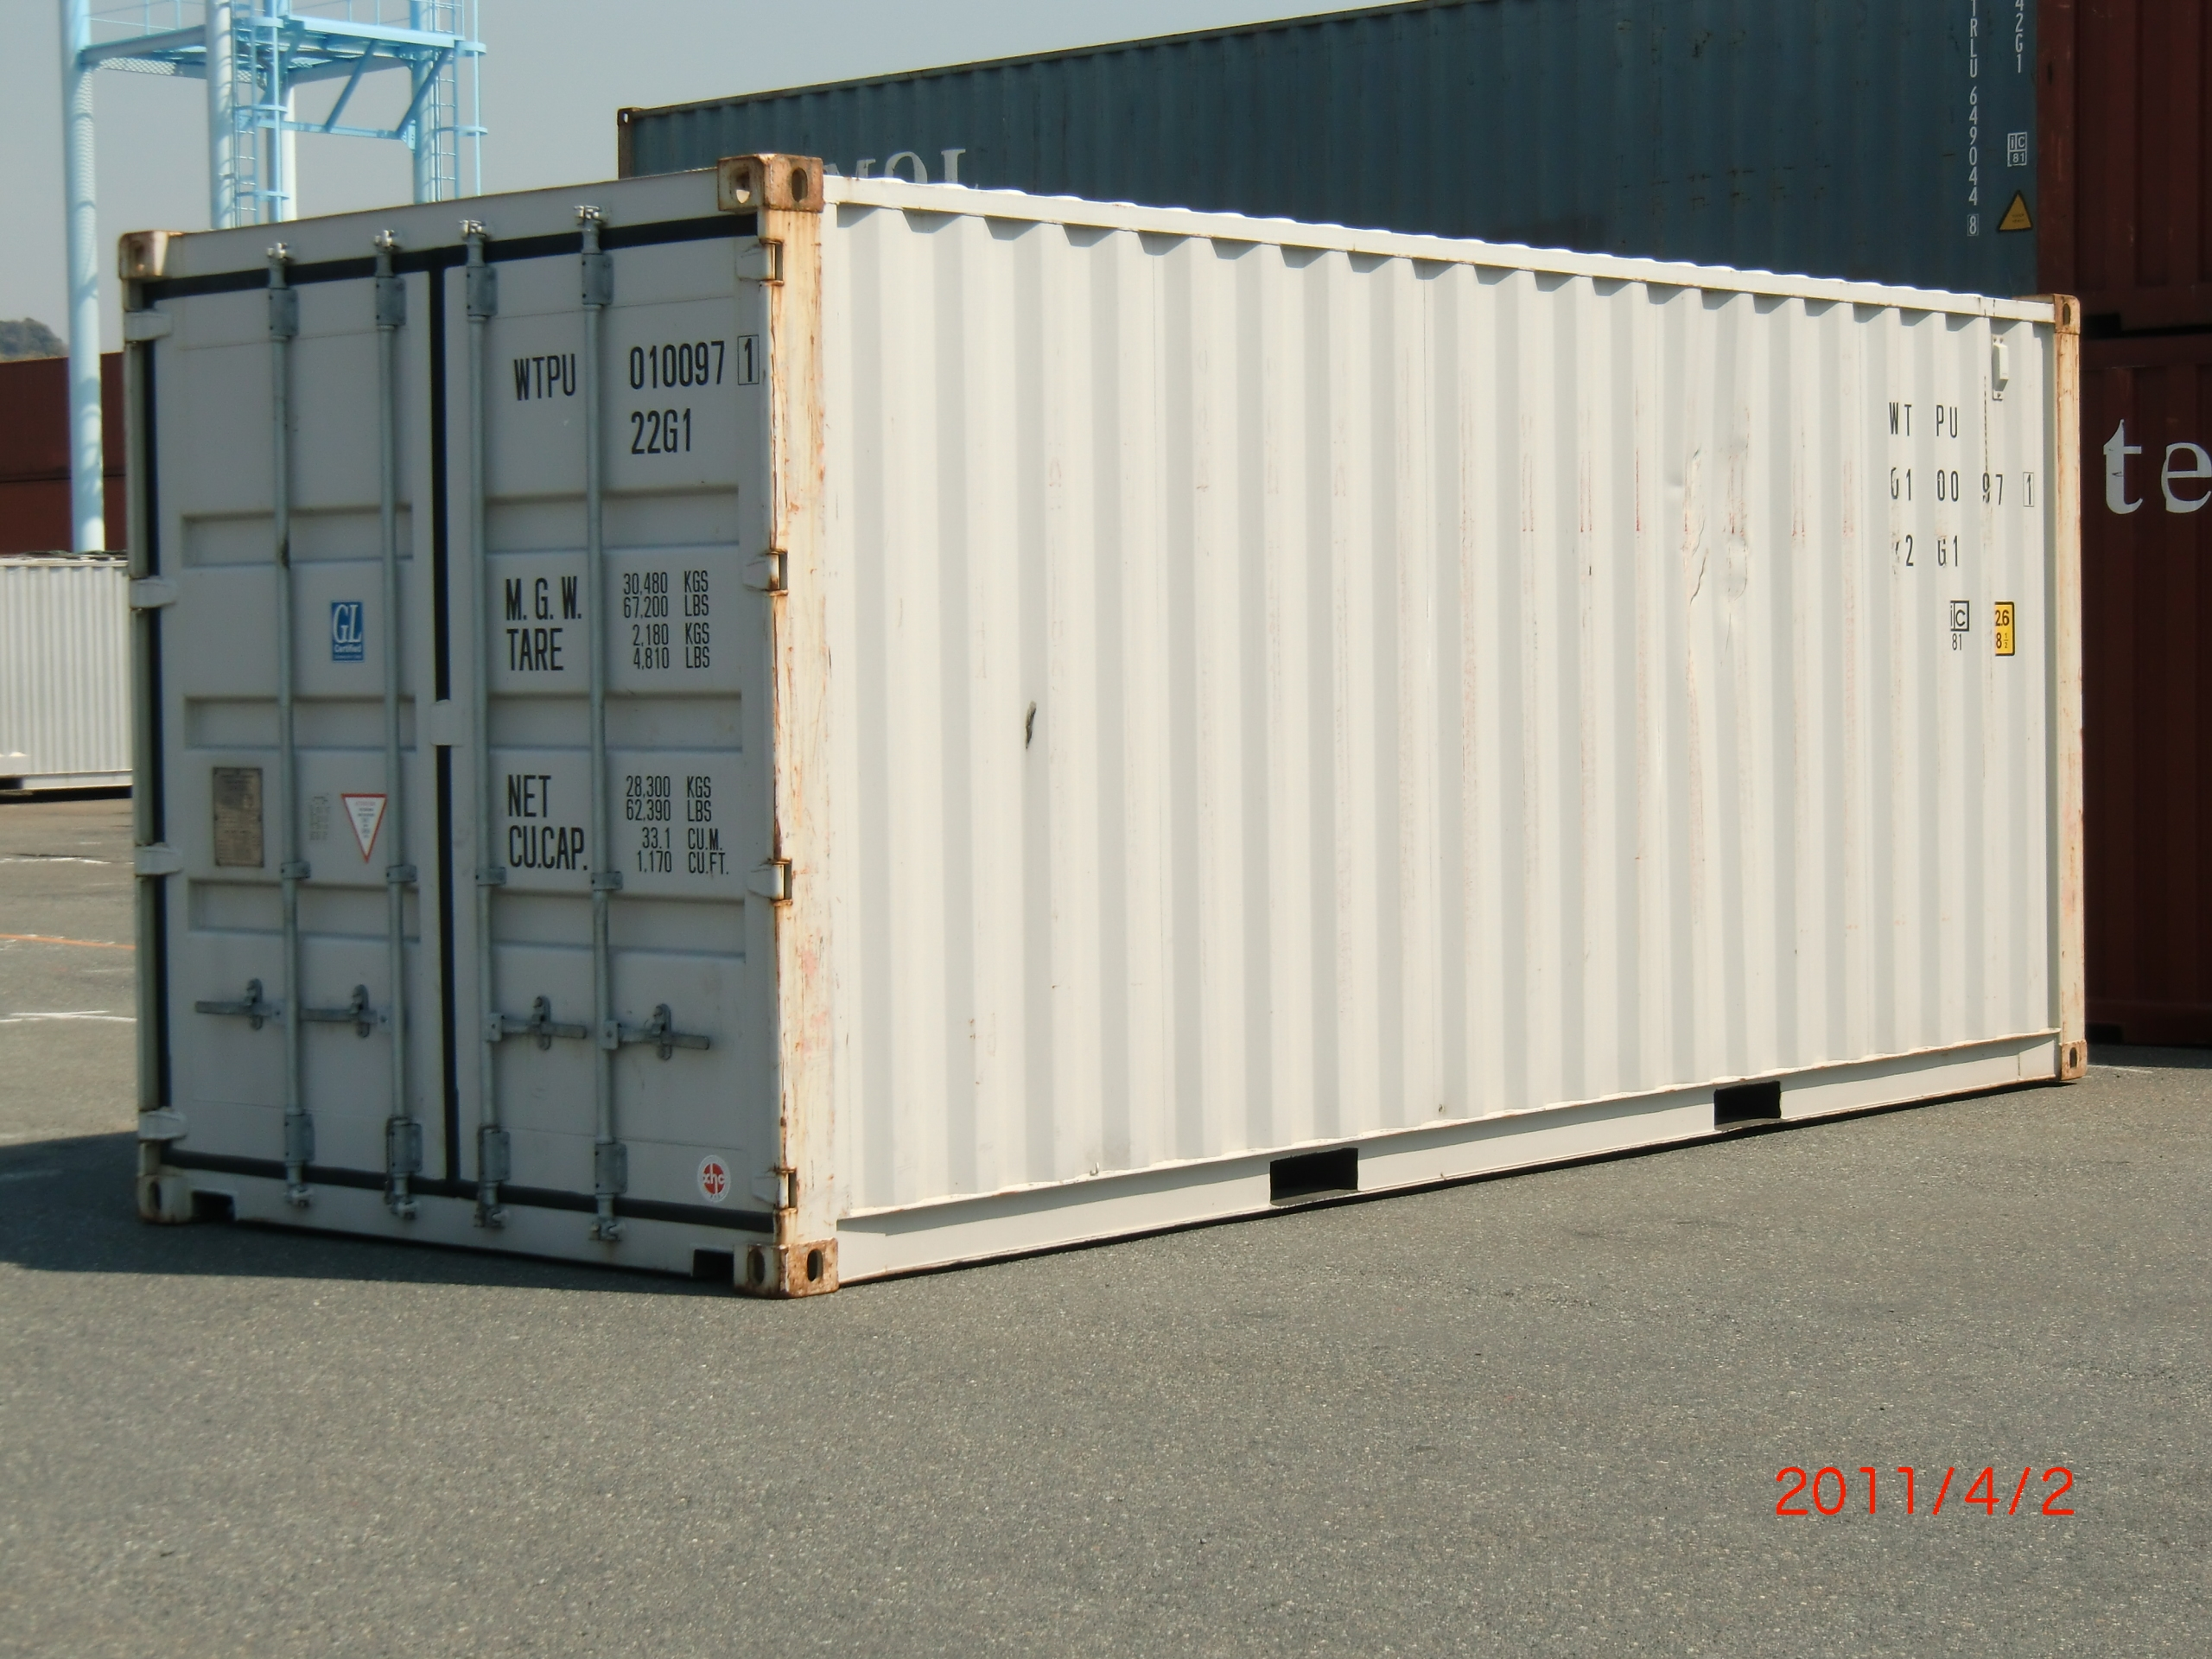 File:Container 【 22G1 】 WTPU 010097(1)---No,1 【 Pictures ...